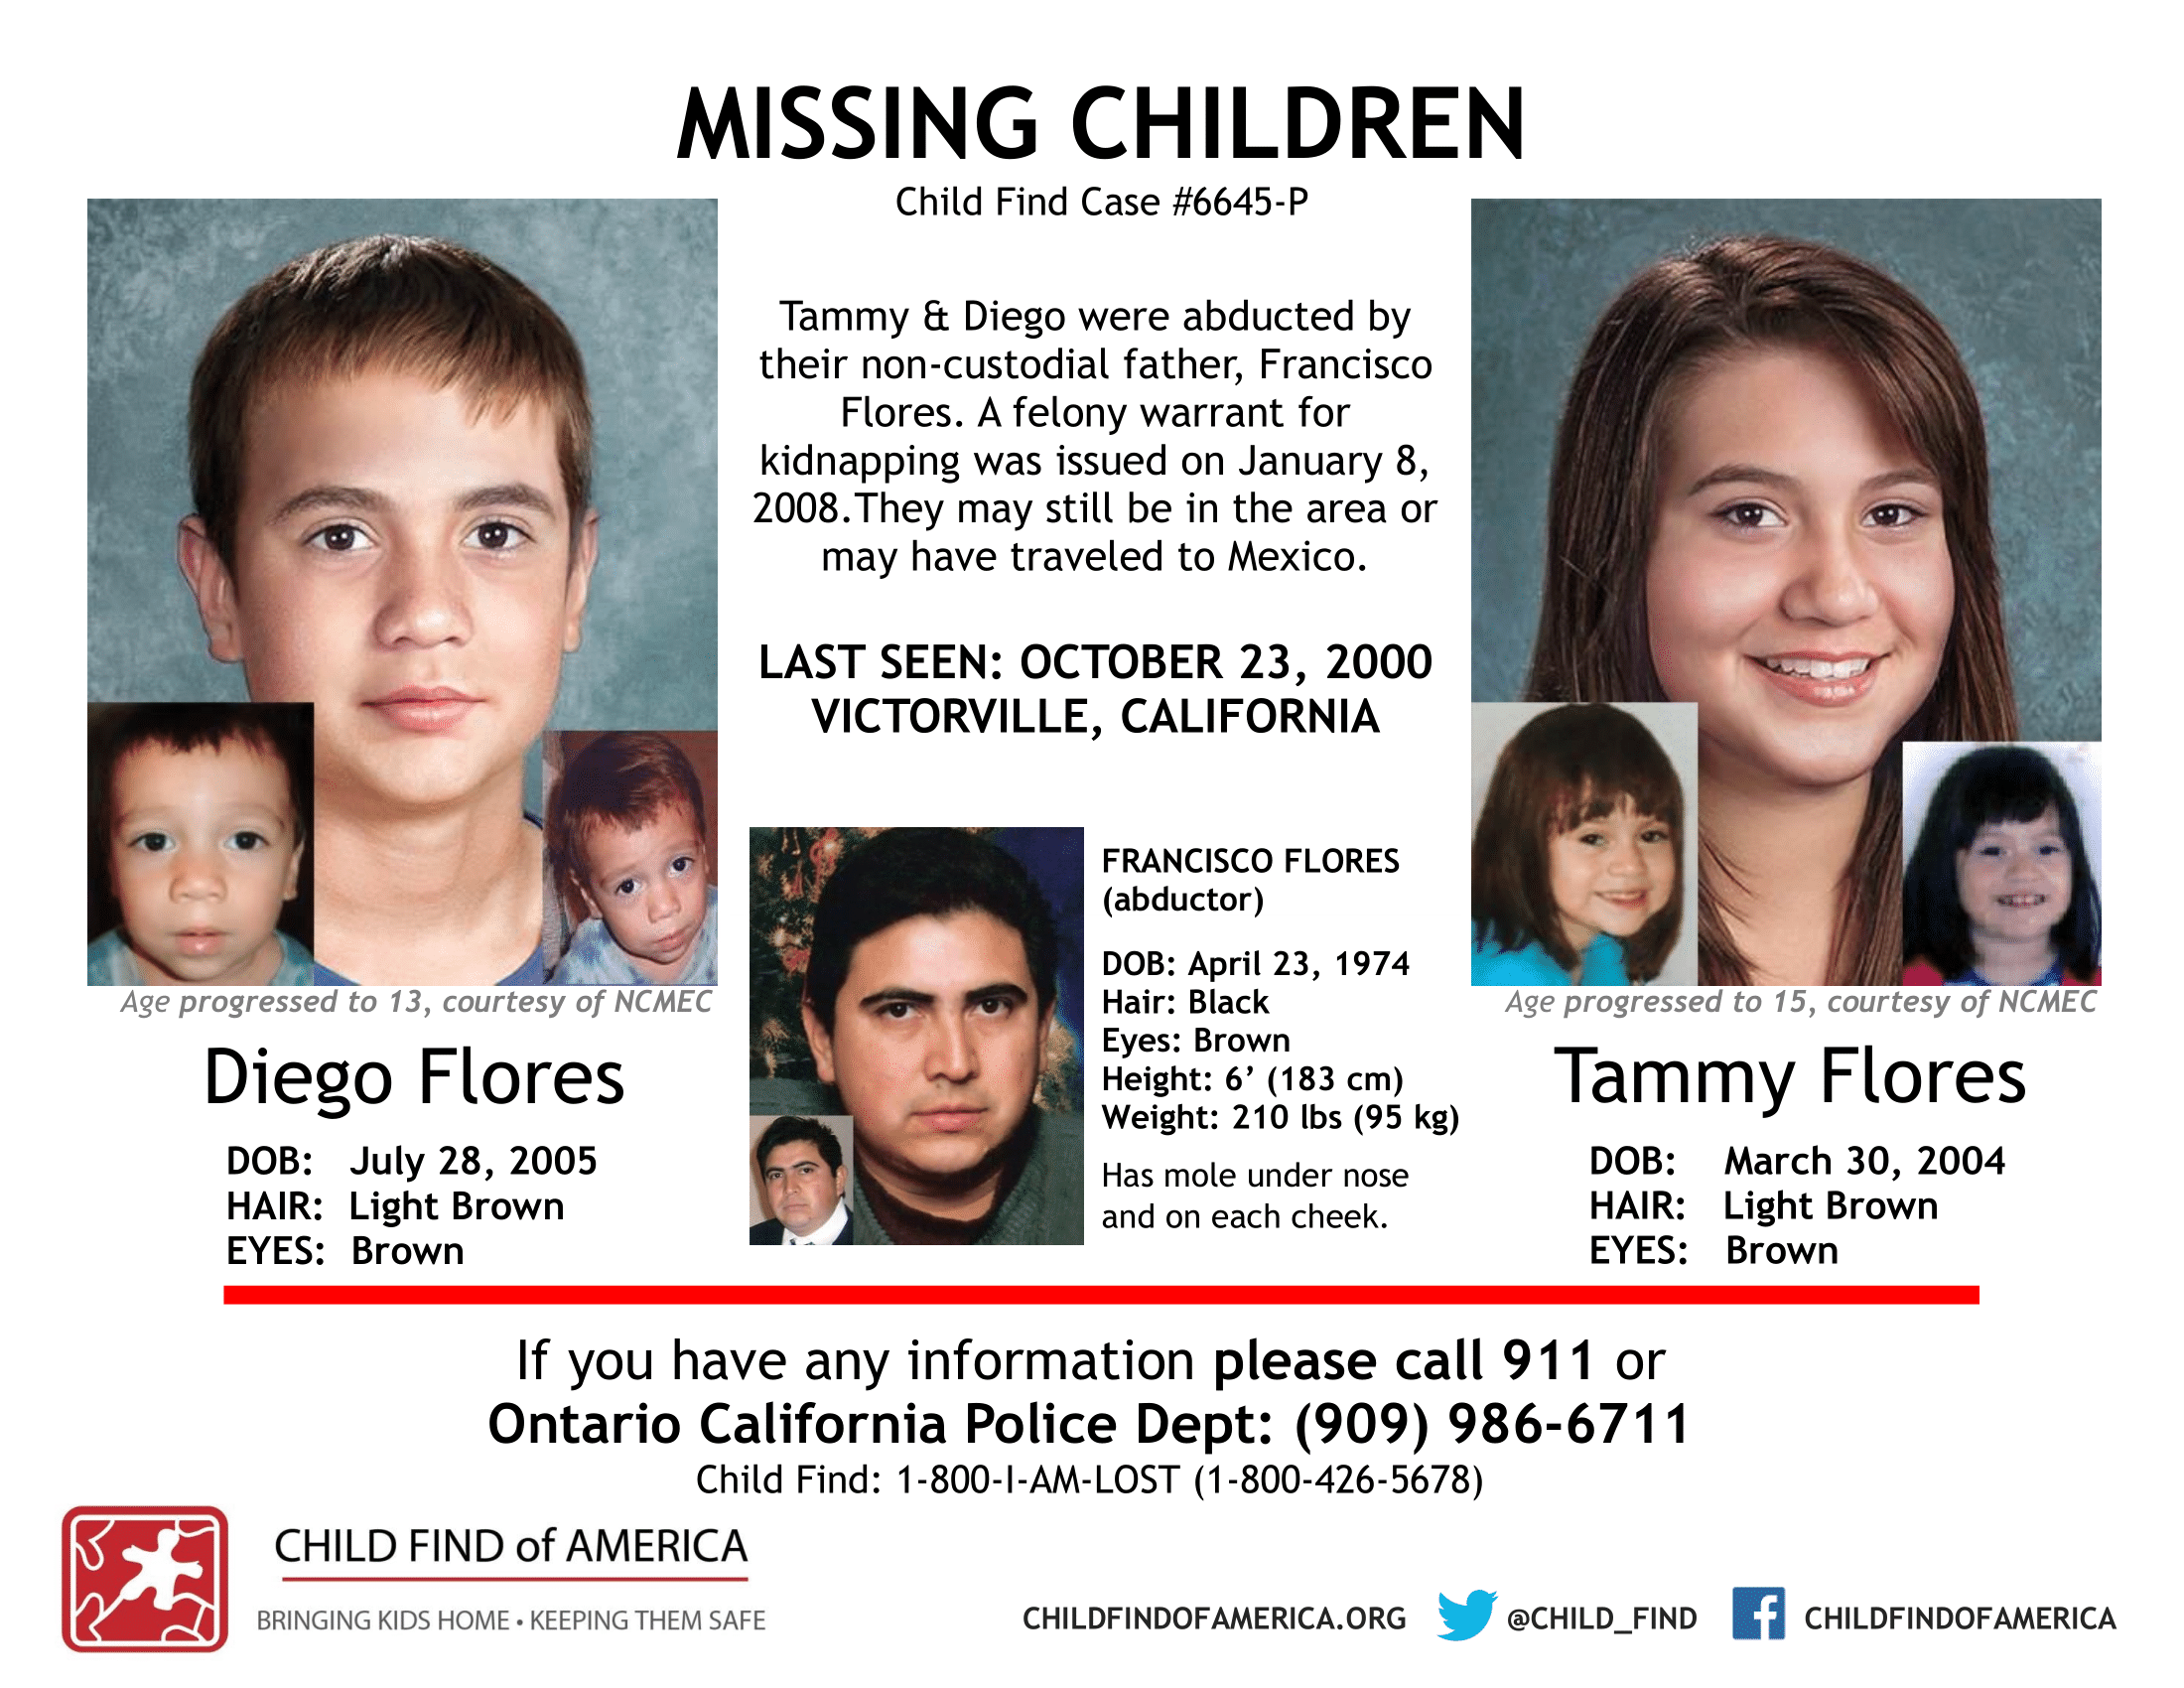 Missing Children Posters - Child Find of America